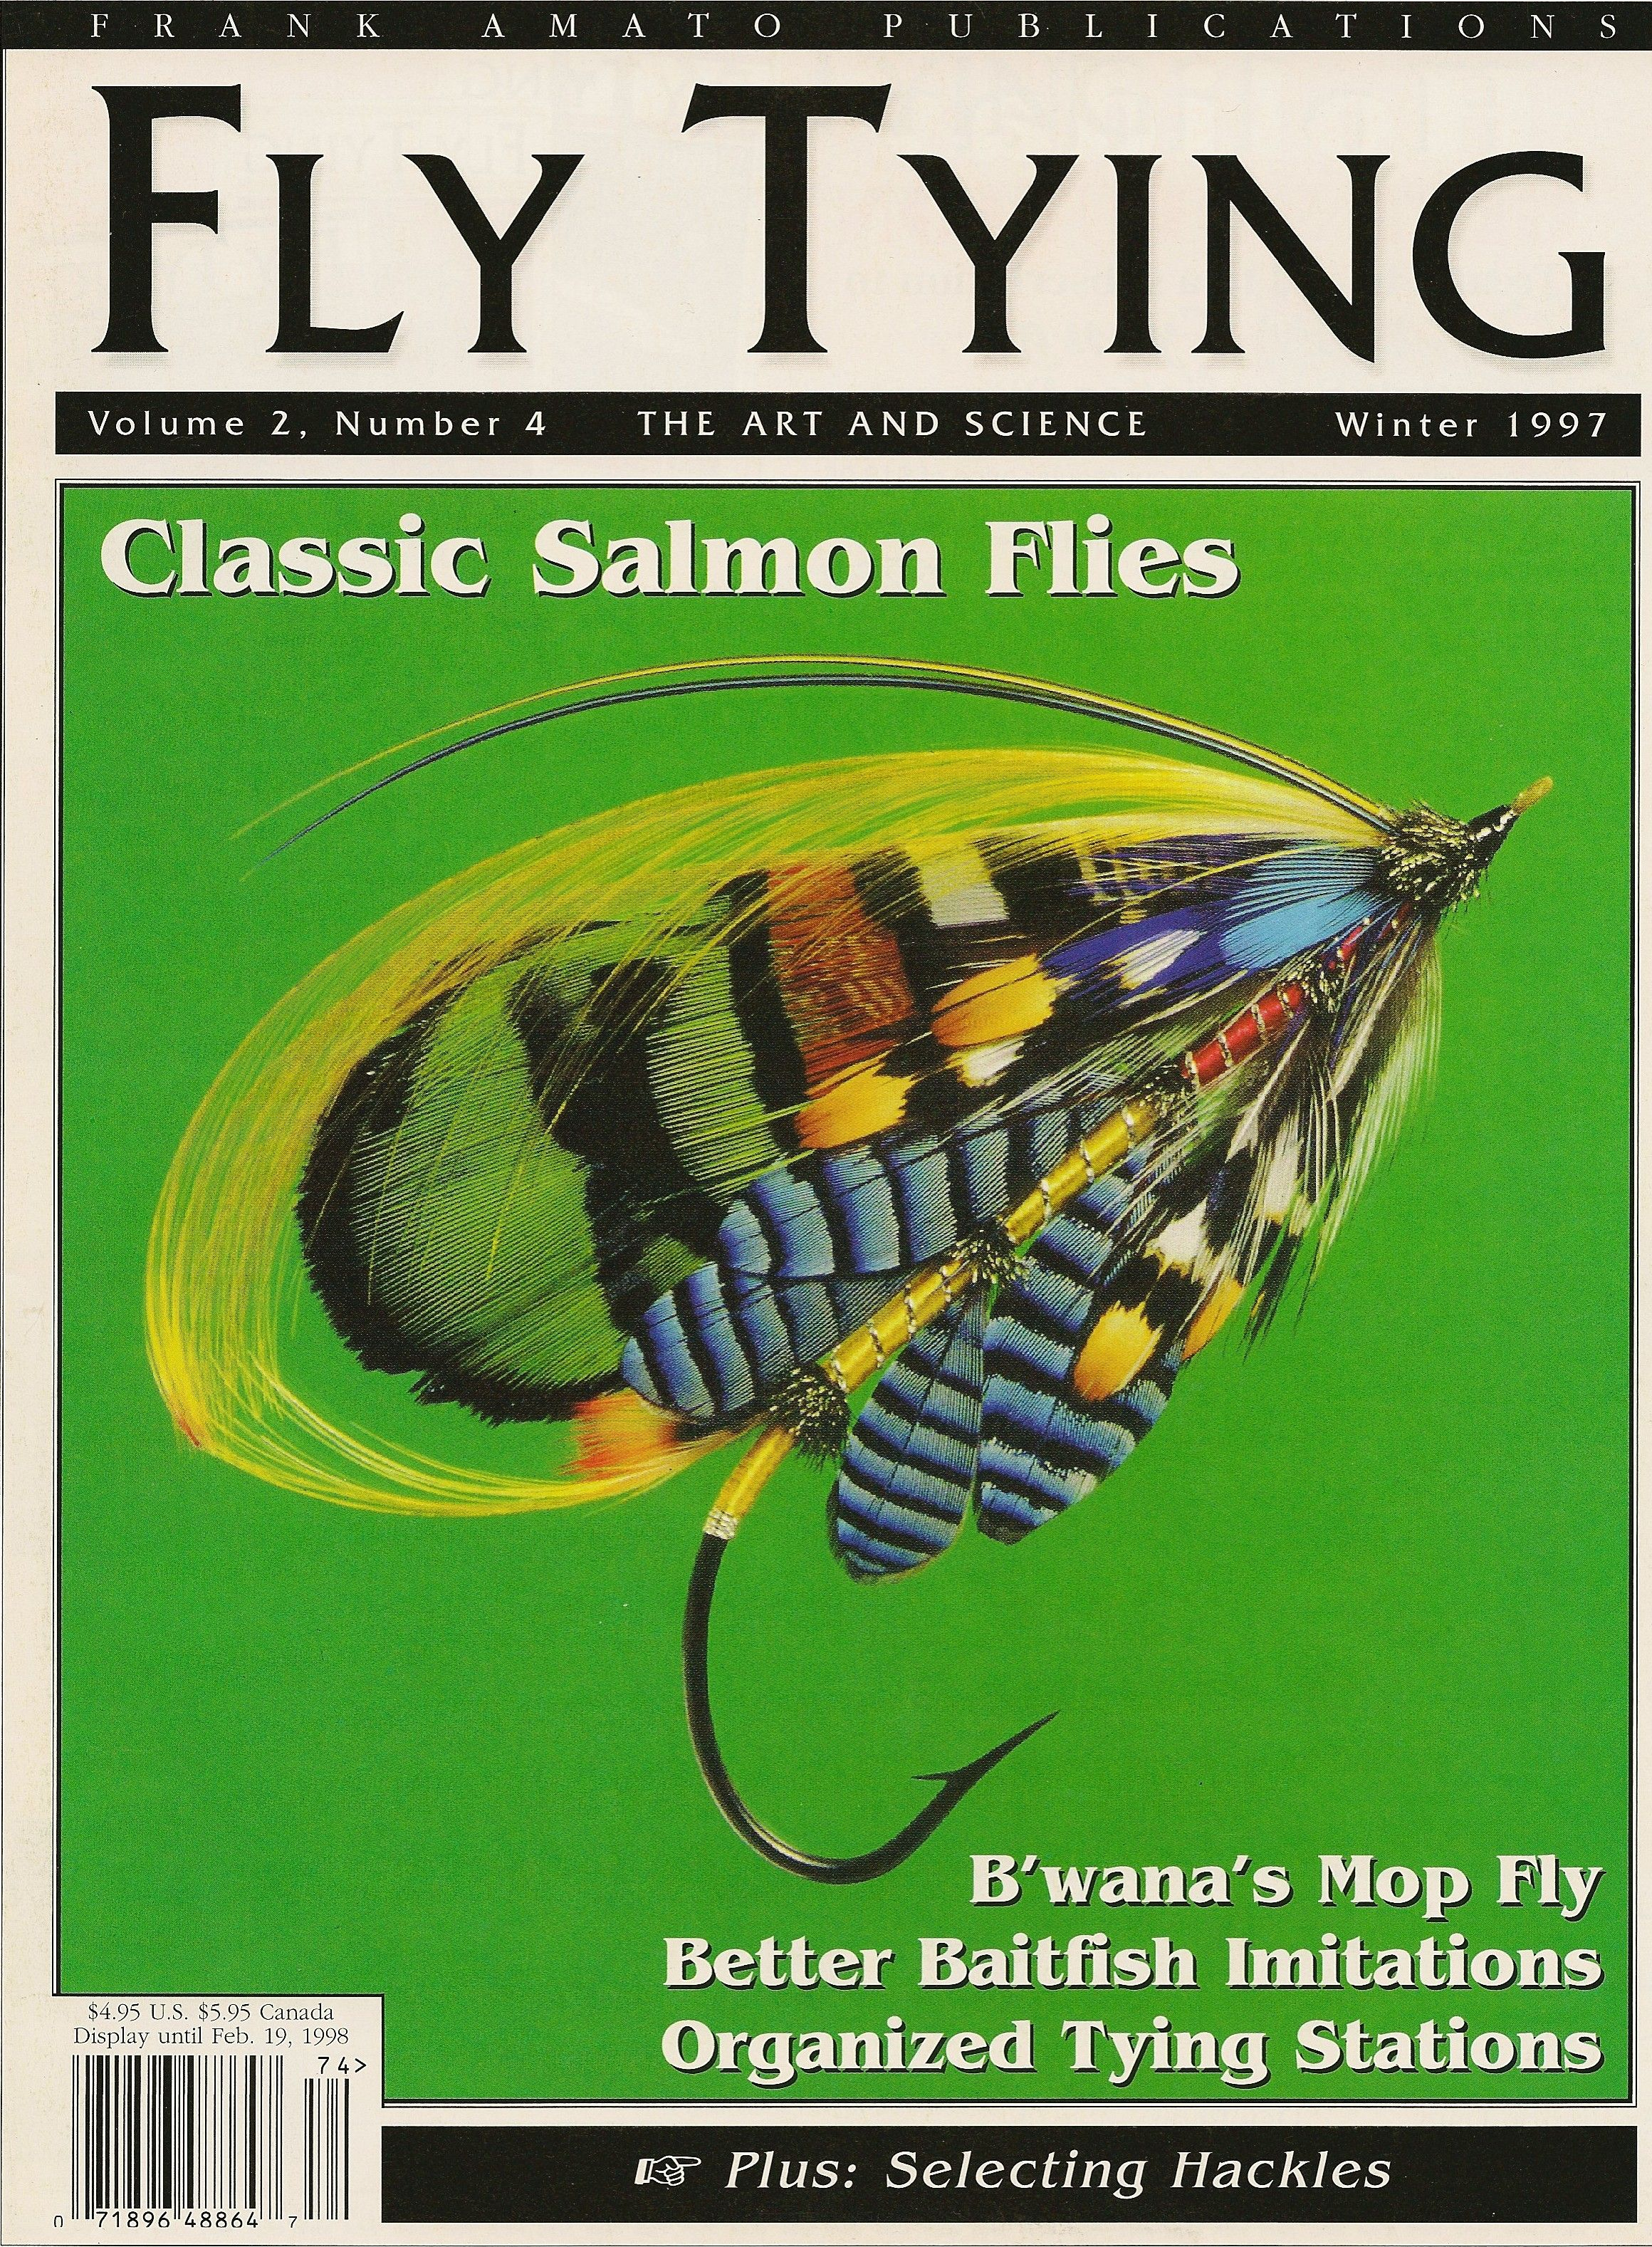 Fly tying classic salmon flies pierre 39 s board pinterest for Fly fishing supplies near me